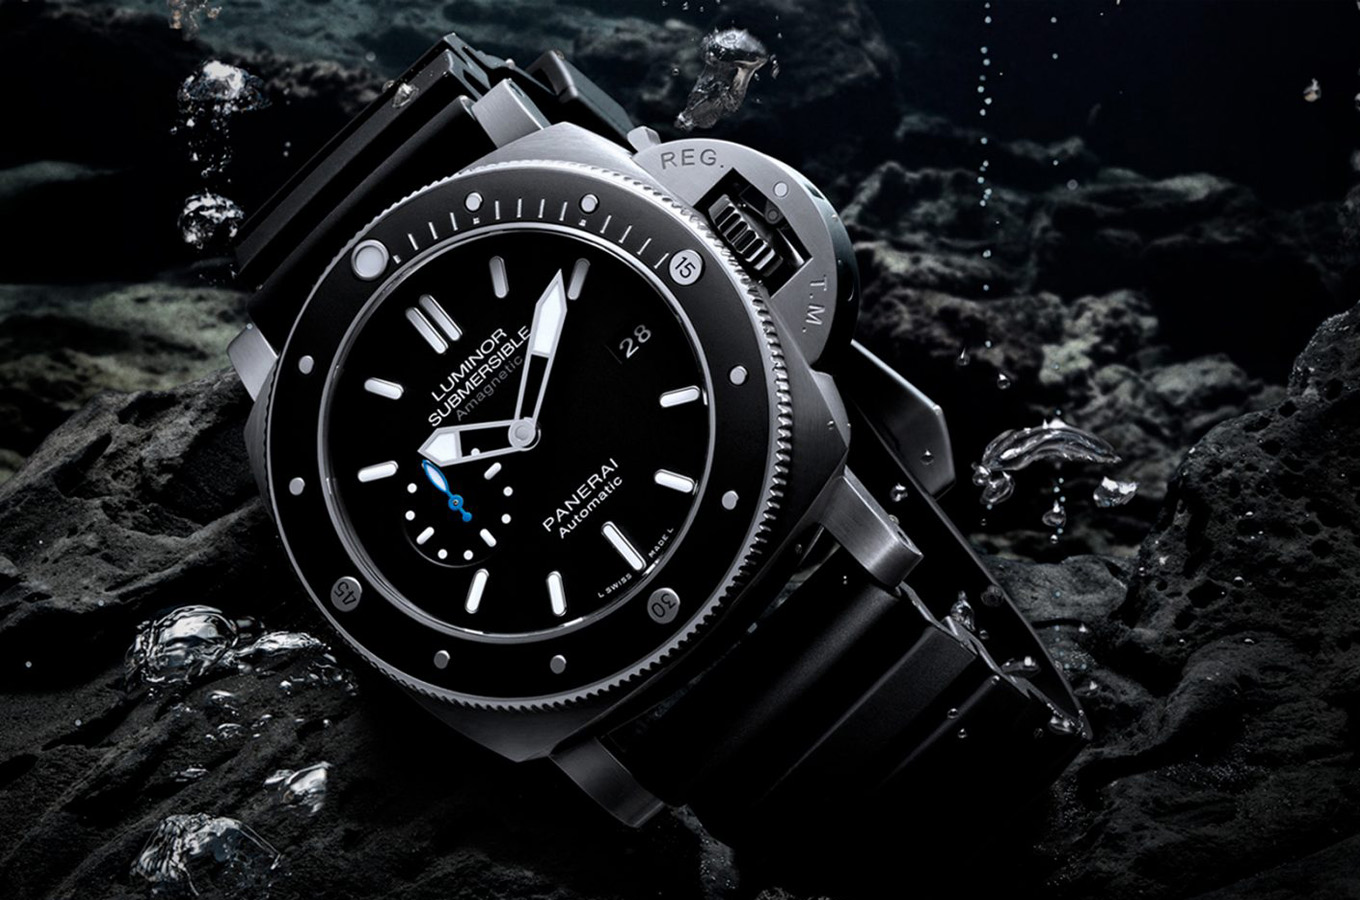 The New Underwater Watch Panerai Submersible Chrono Guillaume Néry